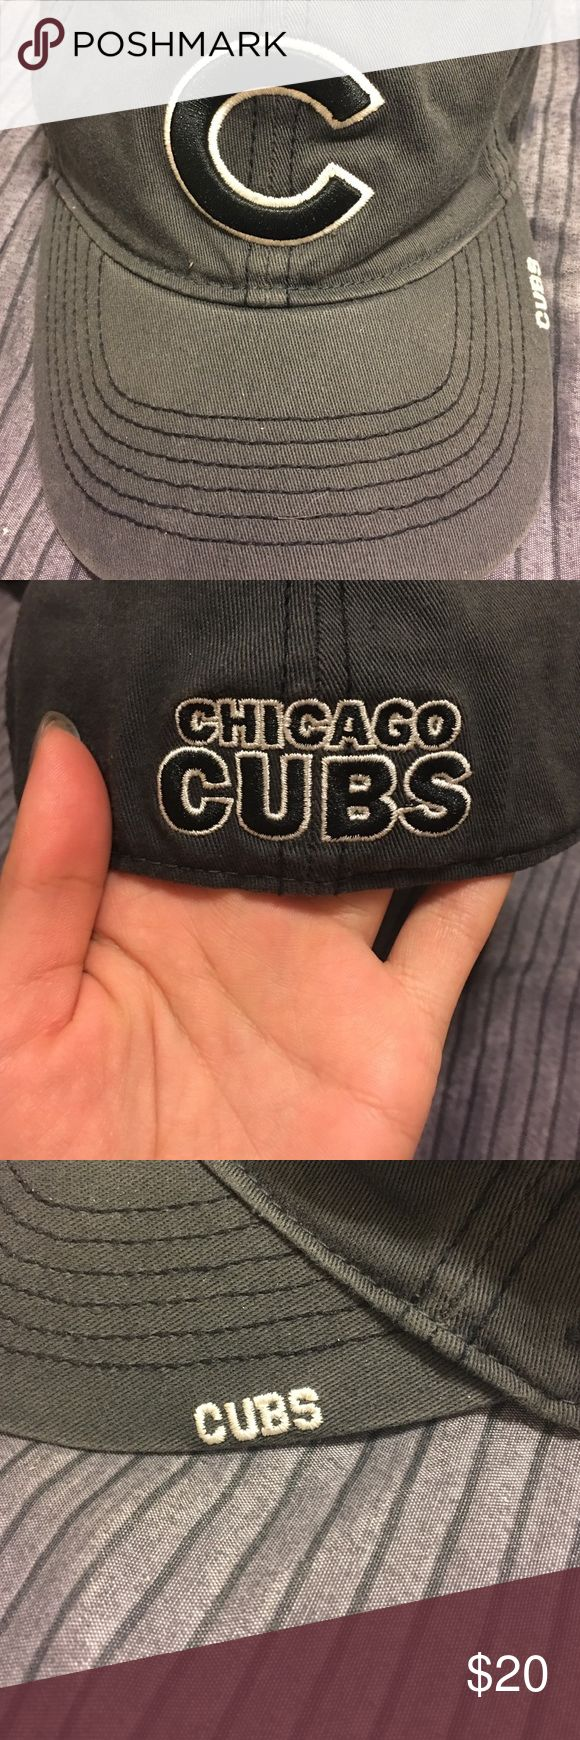 Cubs Fitted Baseball Cap. Official MLB merch. Chicago Cubs, 2016 World Series Champions Official MLB Merchandise. Fitted Baseball Cap. 47 Accessories Hats